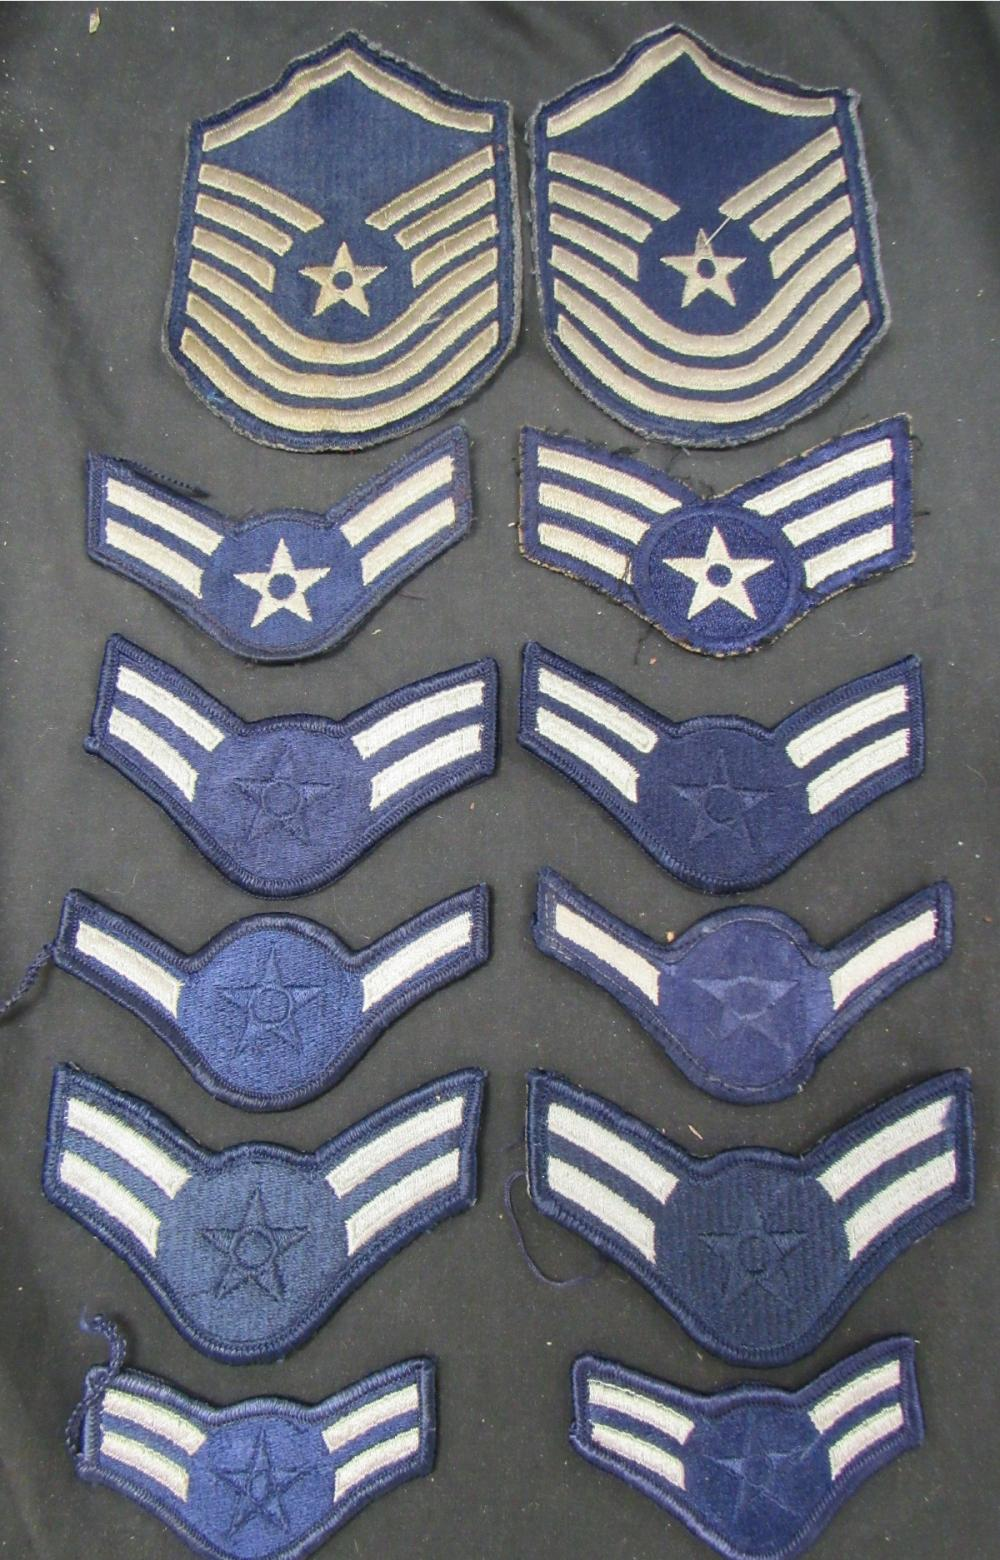 Vintage Air Force Military Arm Patch Lot (6 Pairs), EC